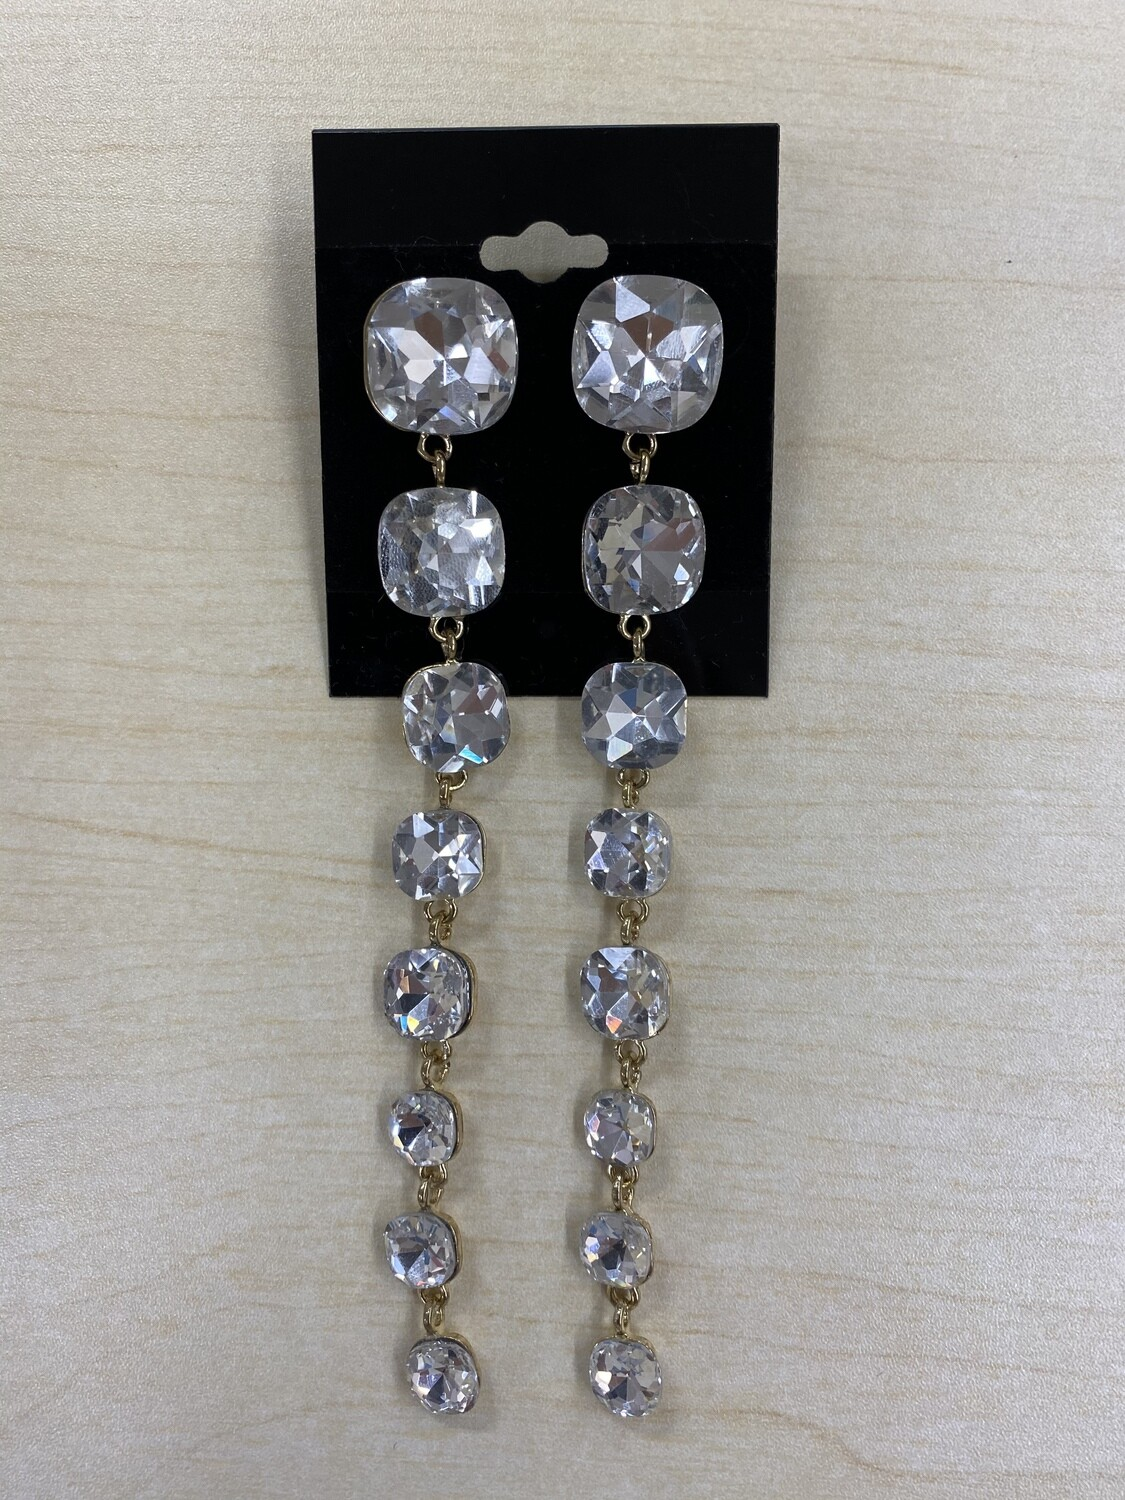 Formal Earrings Gold Clear Square Stones Extra Long